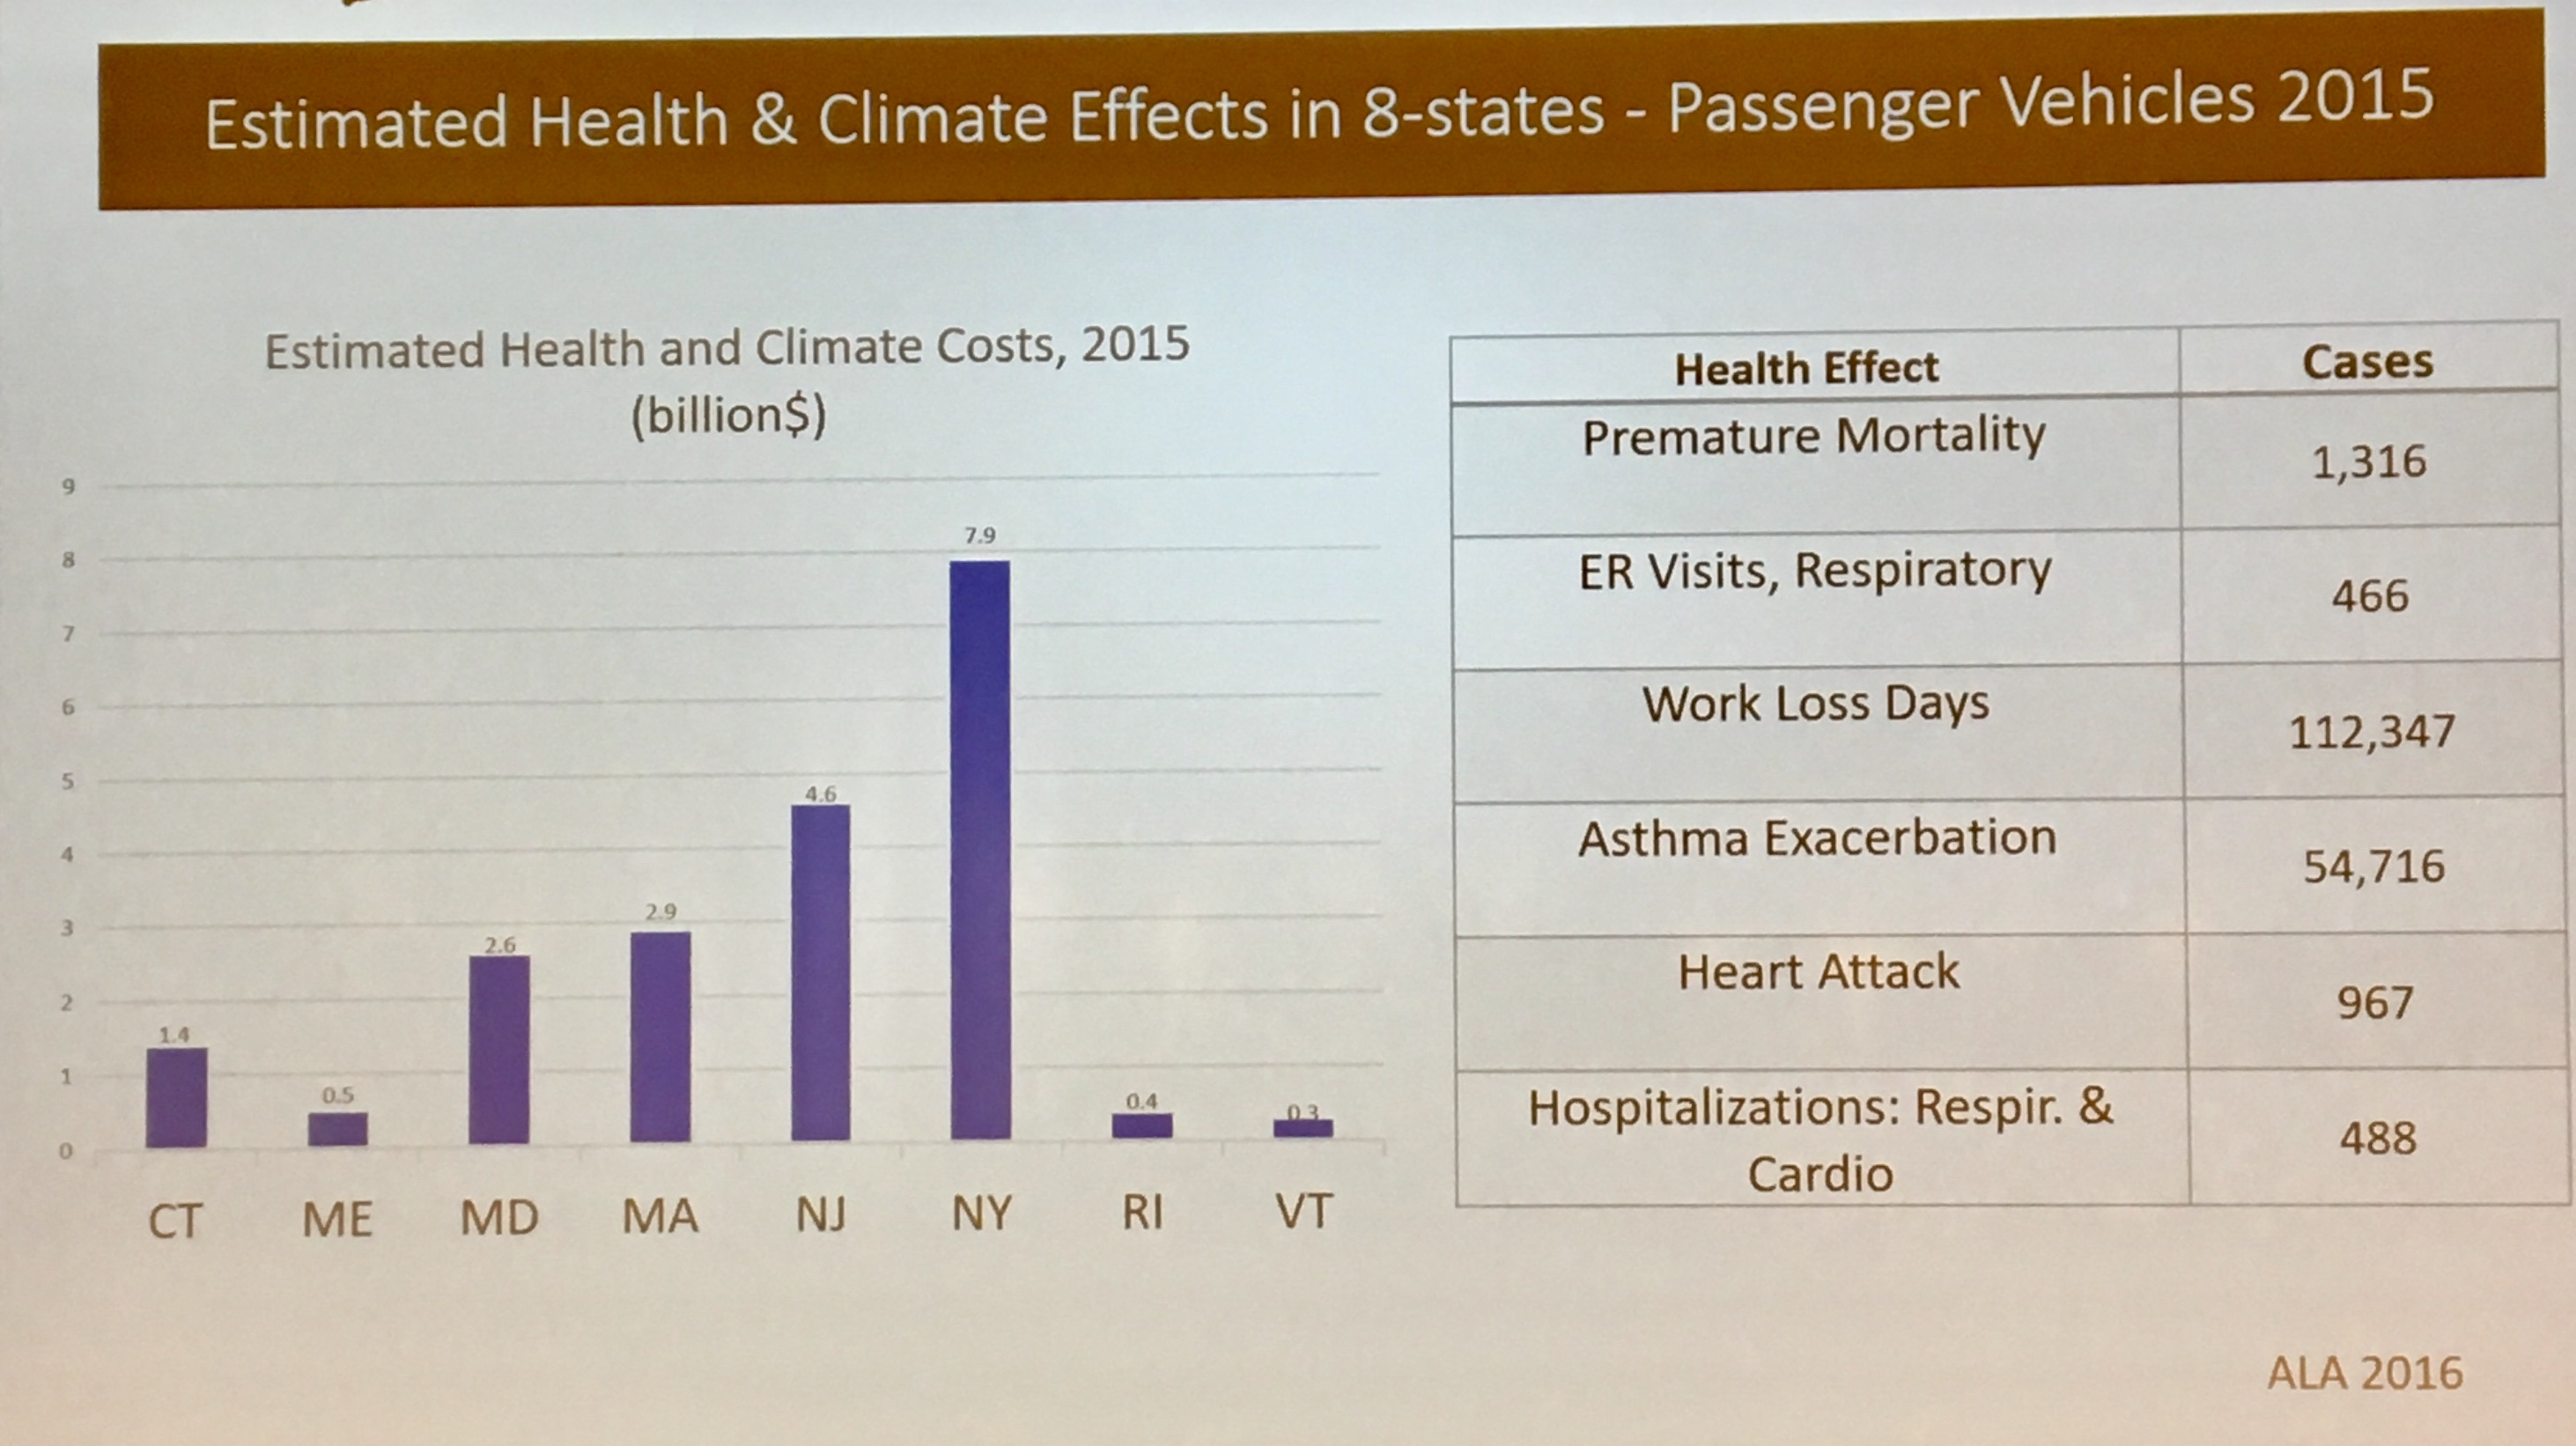 Estimated_Health_and_Climate_Effects.jpg